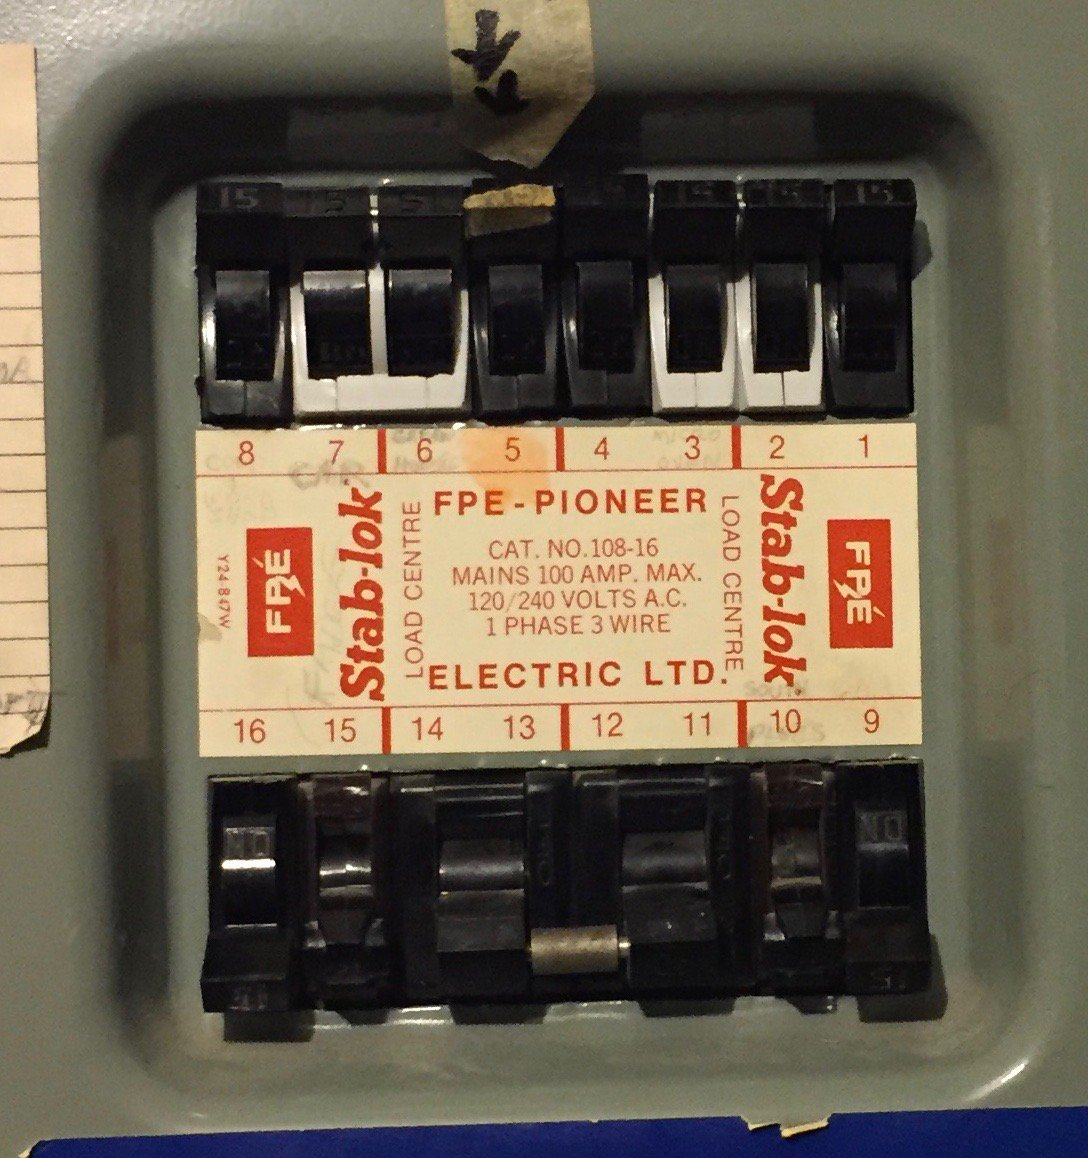 Robart Electrical Robartelectric Twitter Residential Wiring Amps All Service Panels Have Been Rated For 100 Since The 1940spic 4ktgmskdds